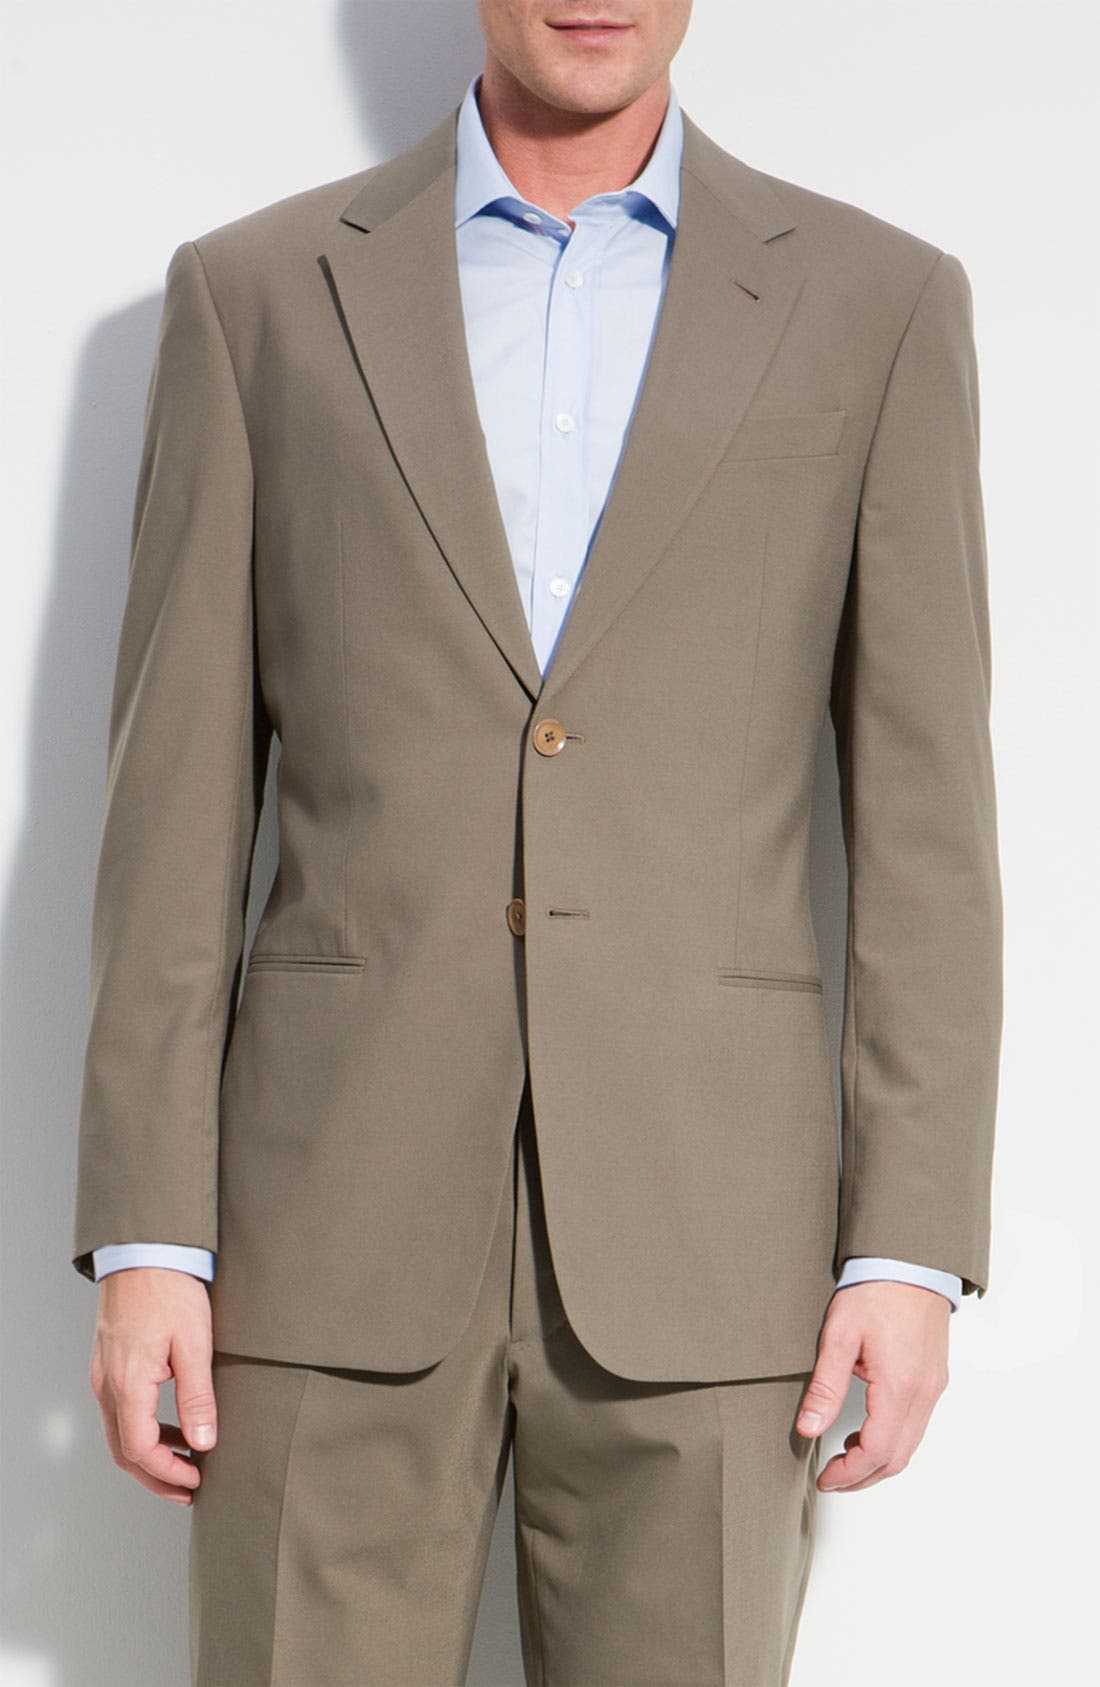 Alternate Image 1 Selected - Armani Collezioni 'Executive' Wool Blend Suit